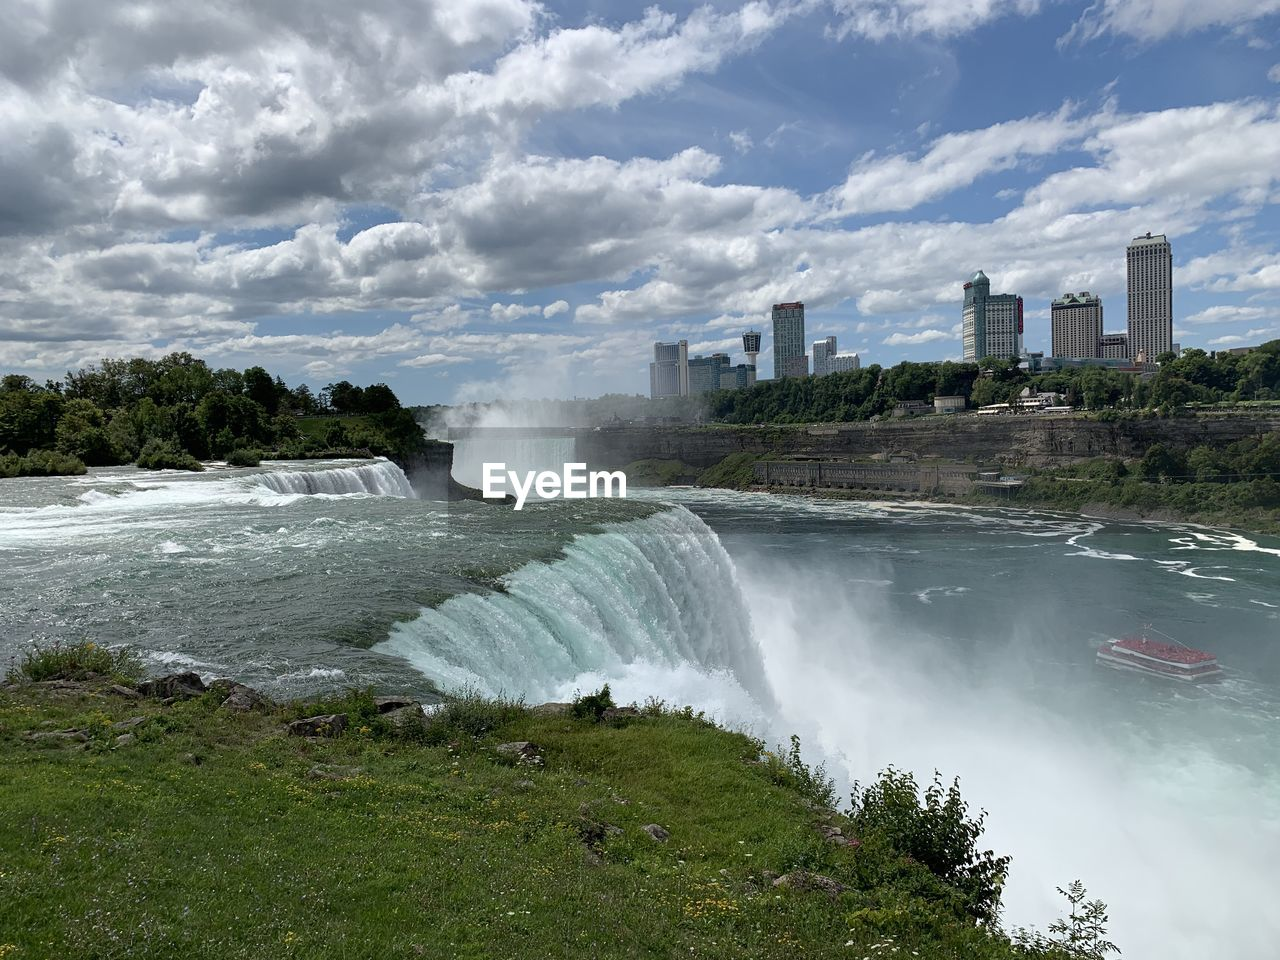 SCENIC VIEW OF WATERFALL BY CITY AGAINST SKY